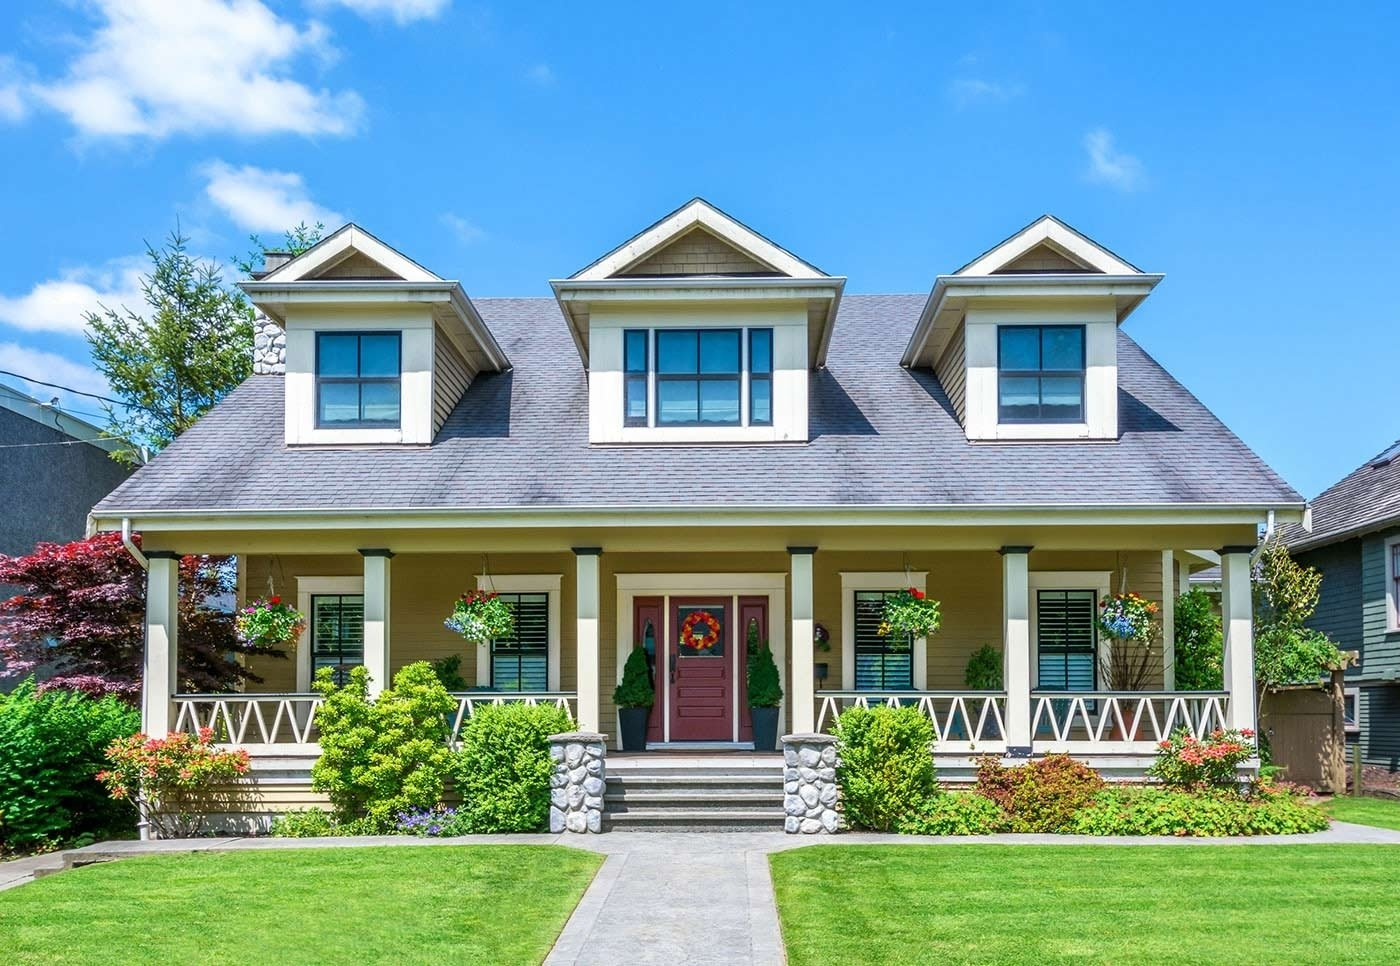 10 stunning are rent to own homes a good idea